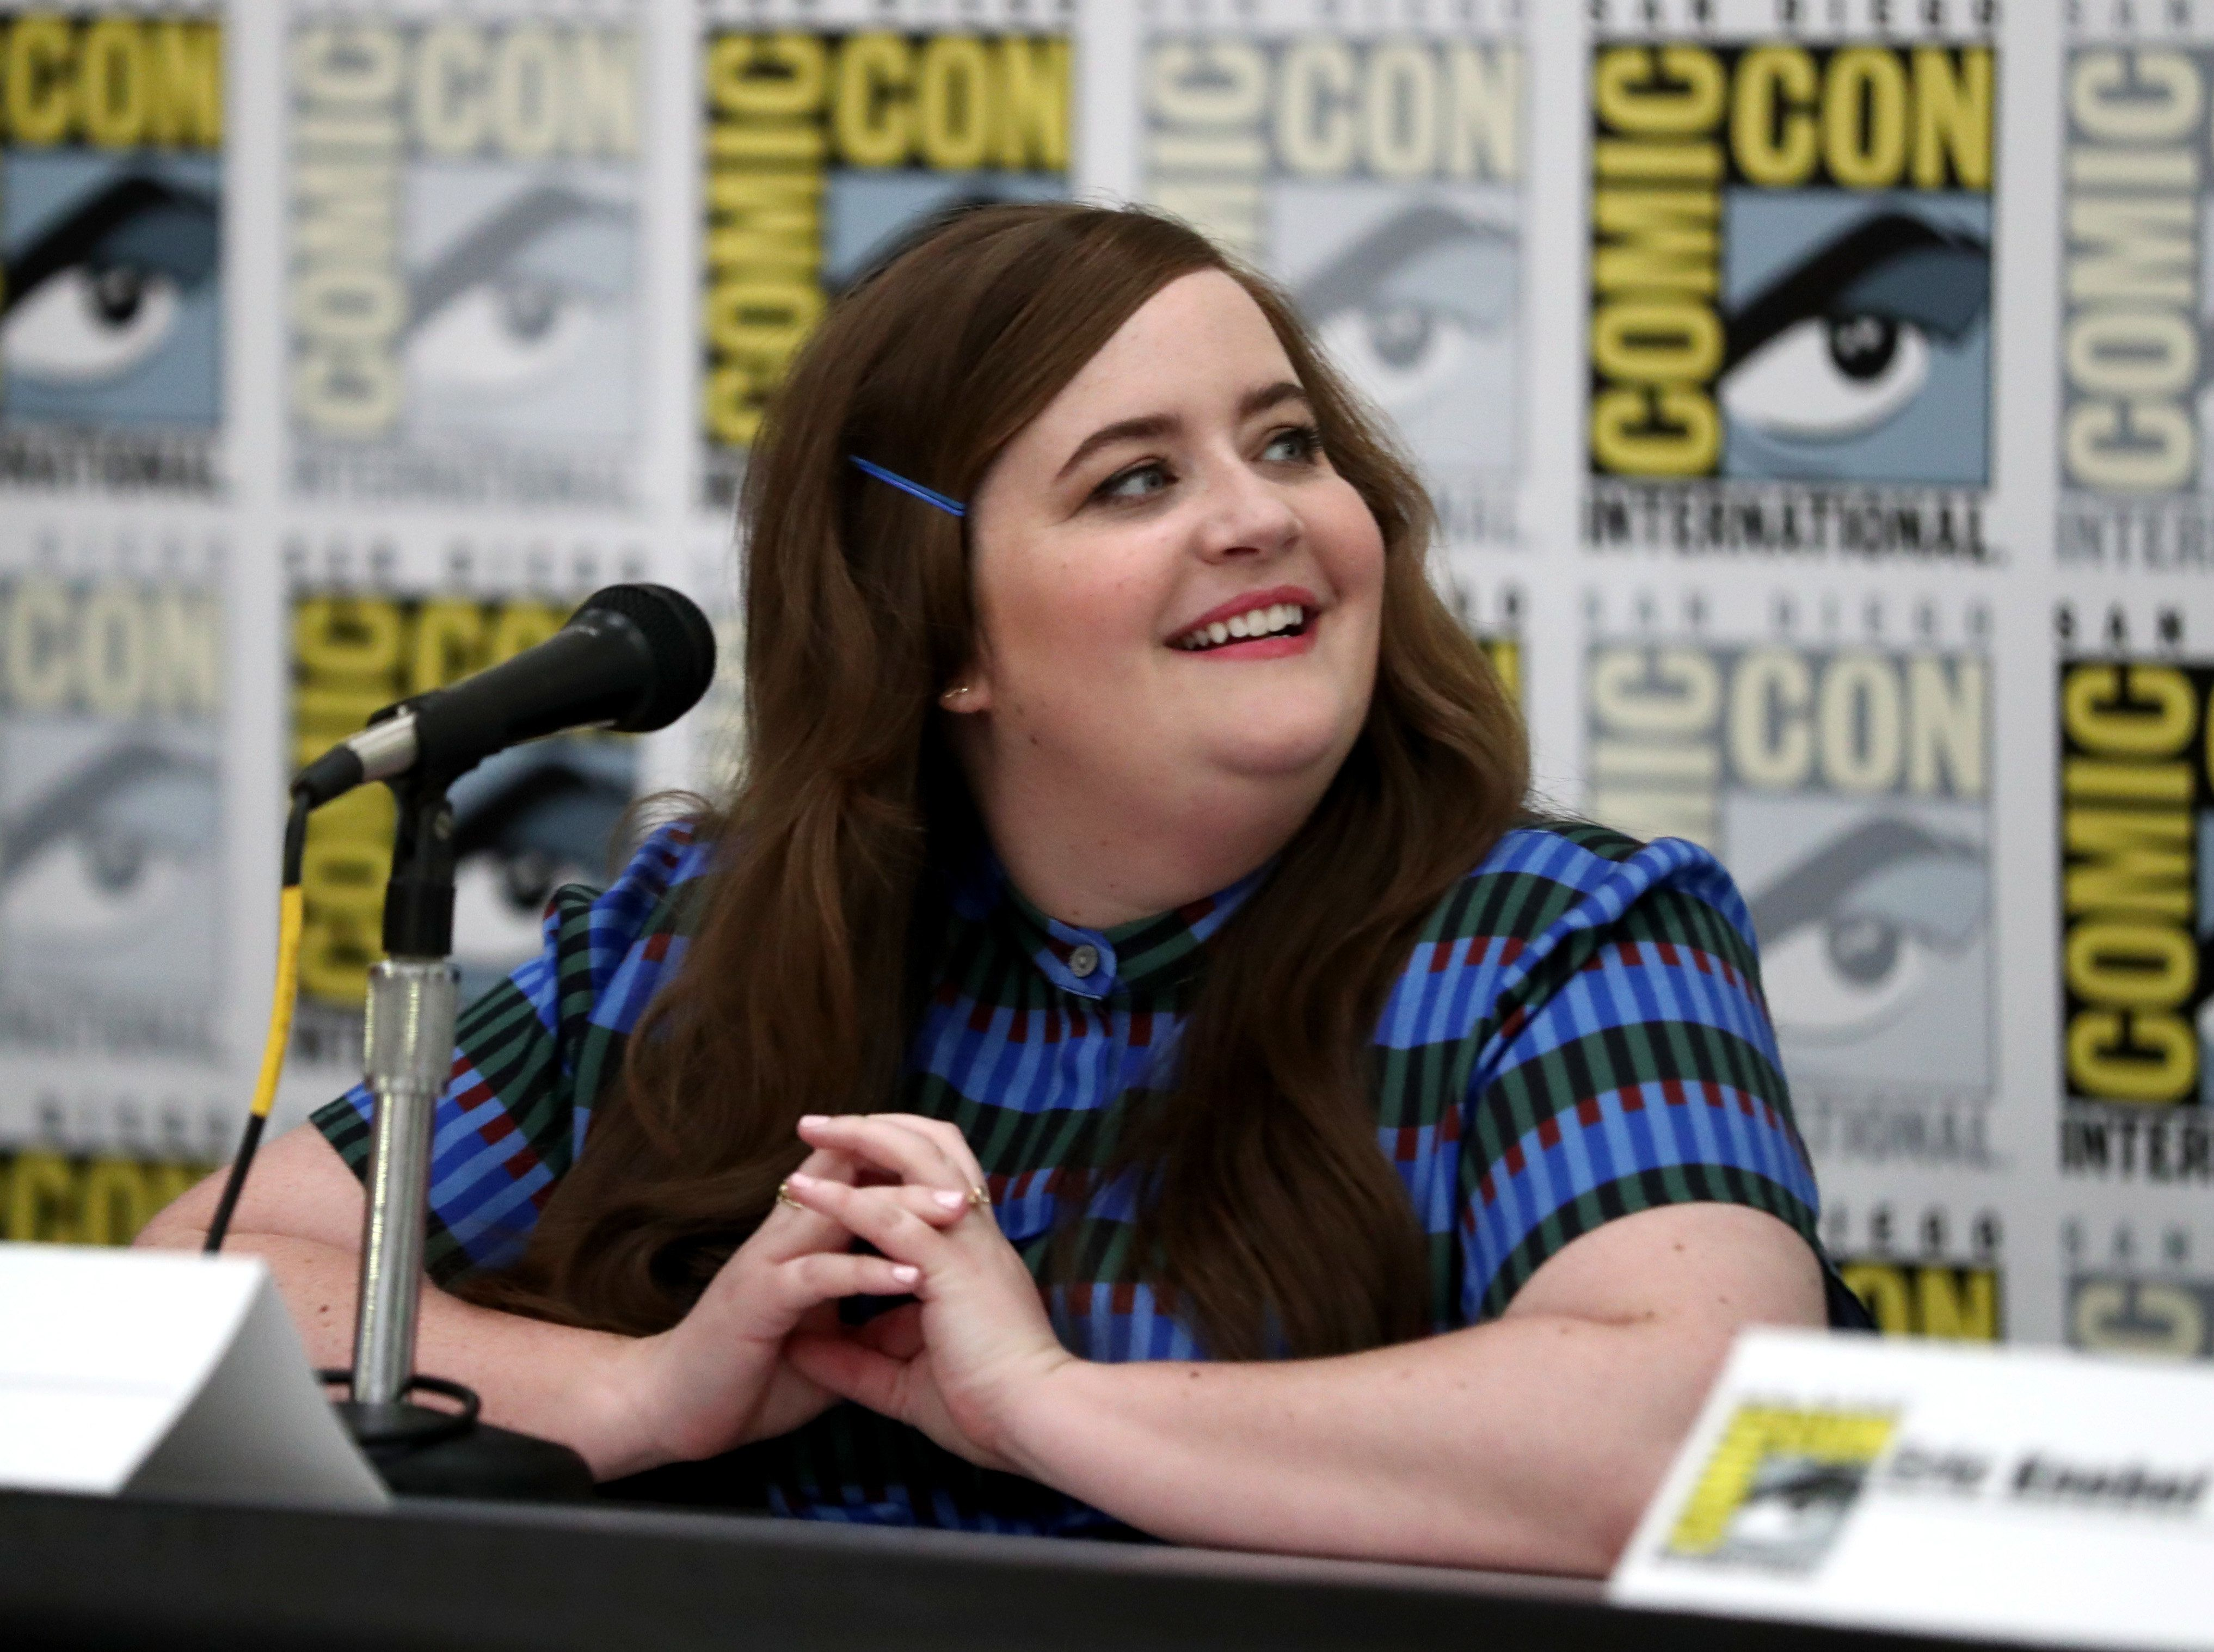 SAN DIEGO, CA - JULY 23:  Actor Aidy Bryant attends Amazon's 'Danger & Eggs' panel at San Diego Comic-Con International 2017 at the San Diego Convention Center on July 23, 2017 in San Diego, California.  (Photo by Todd Williamson/Getty Images for Amazon Studios)